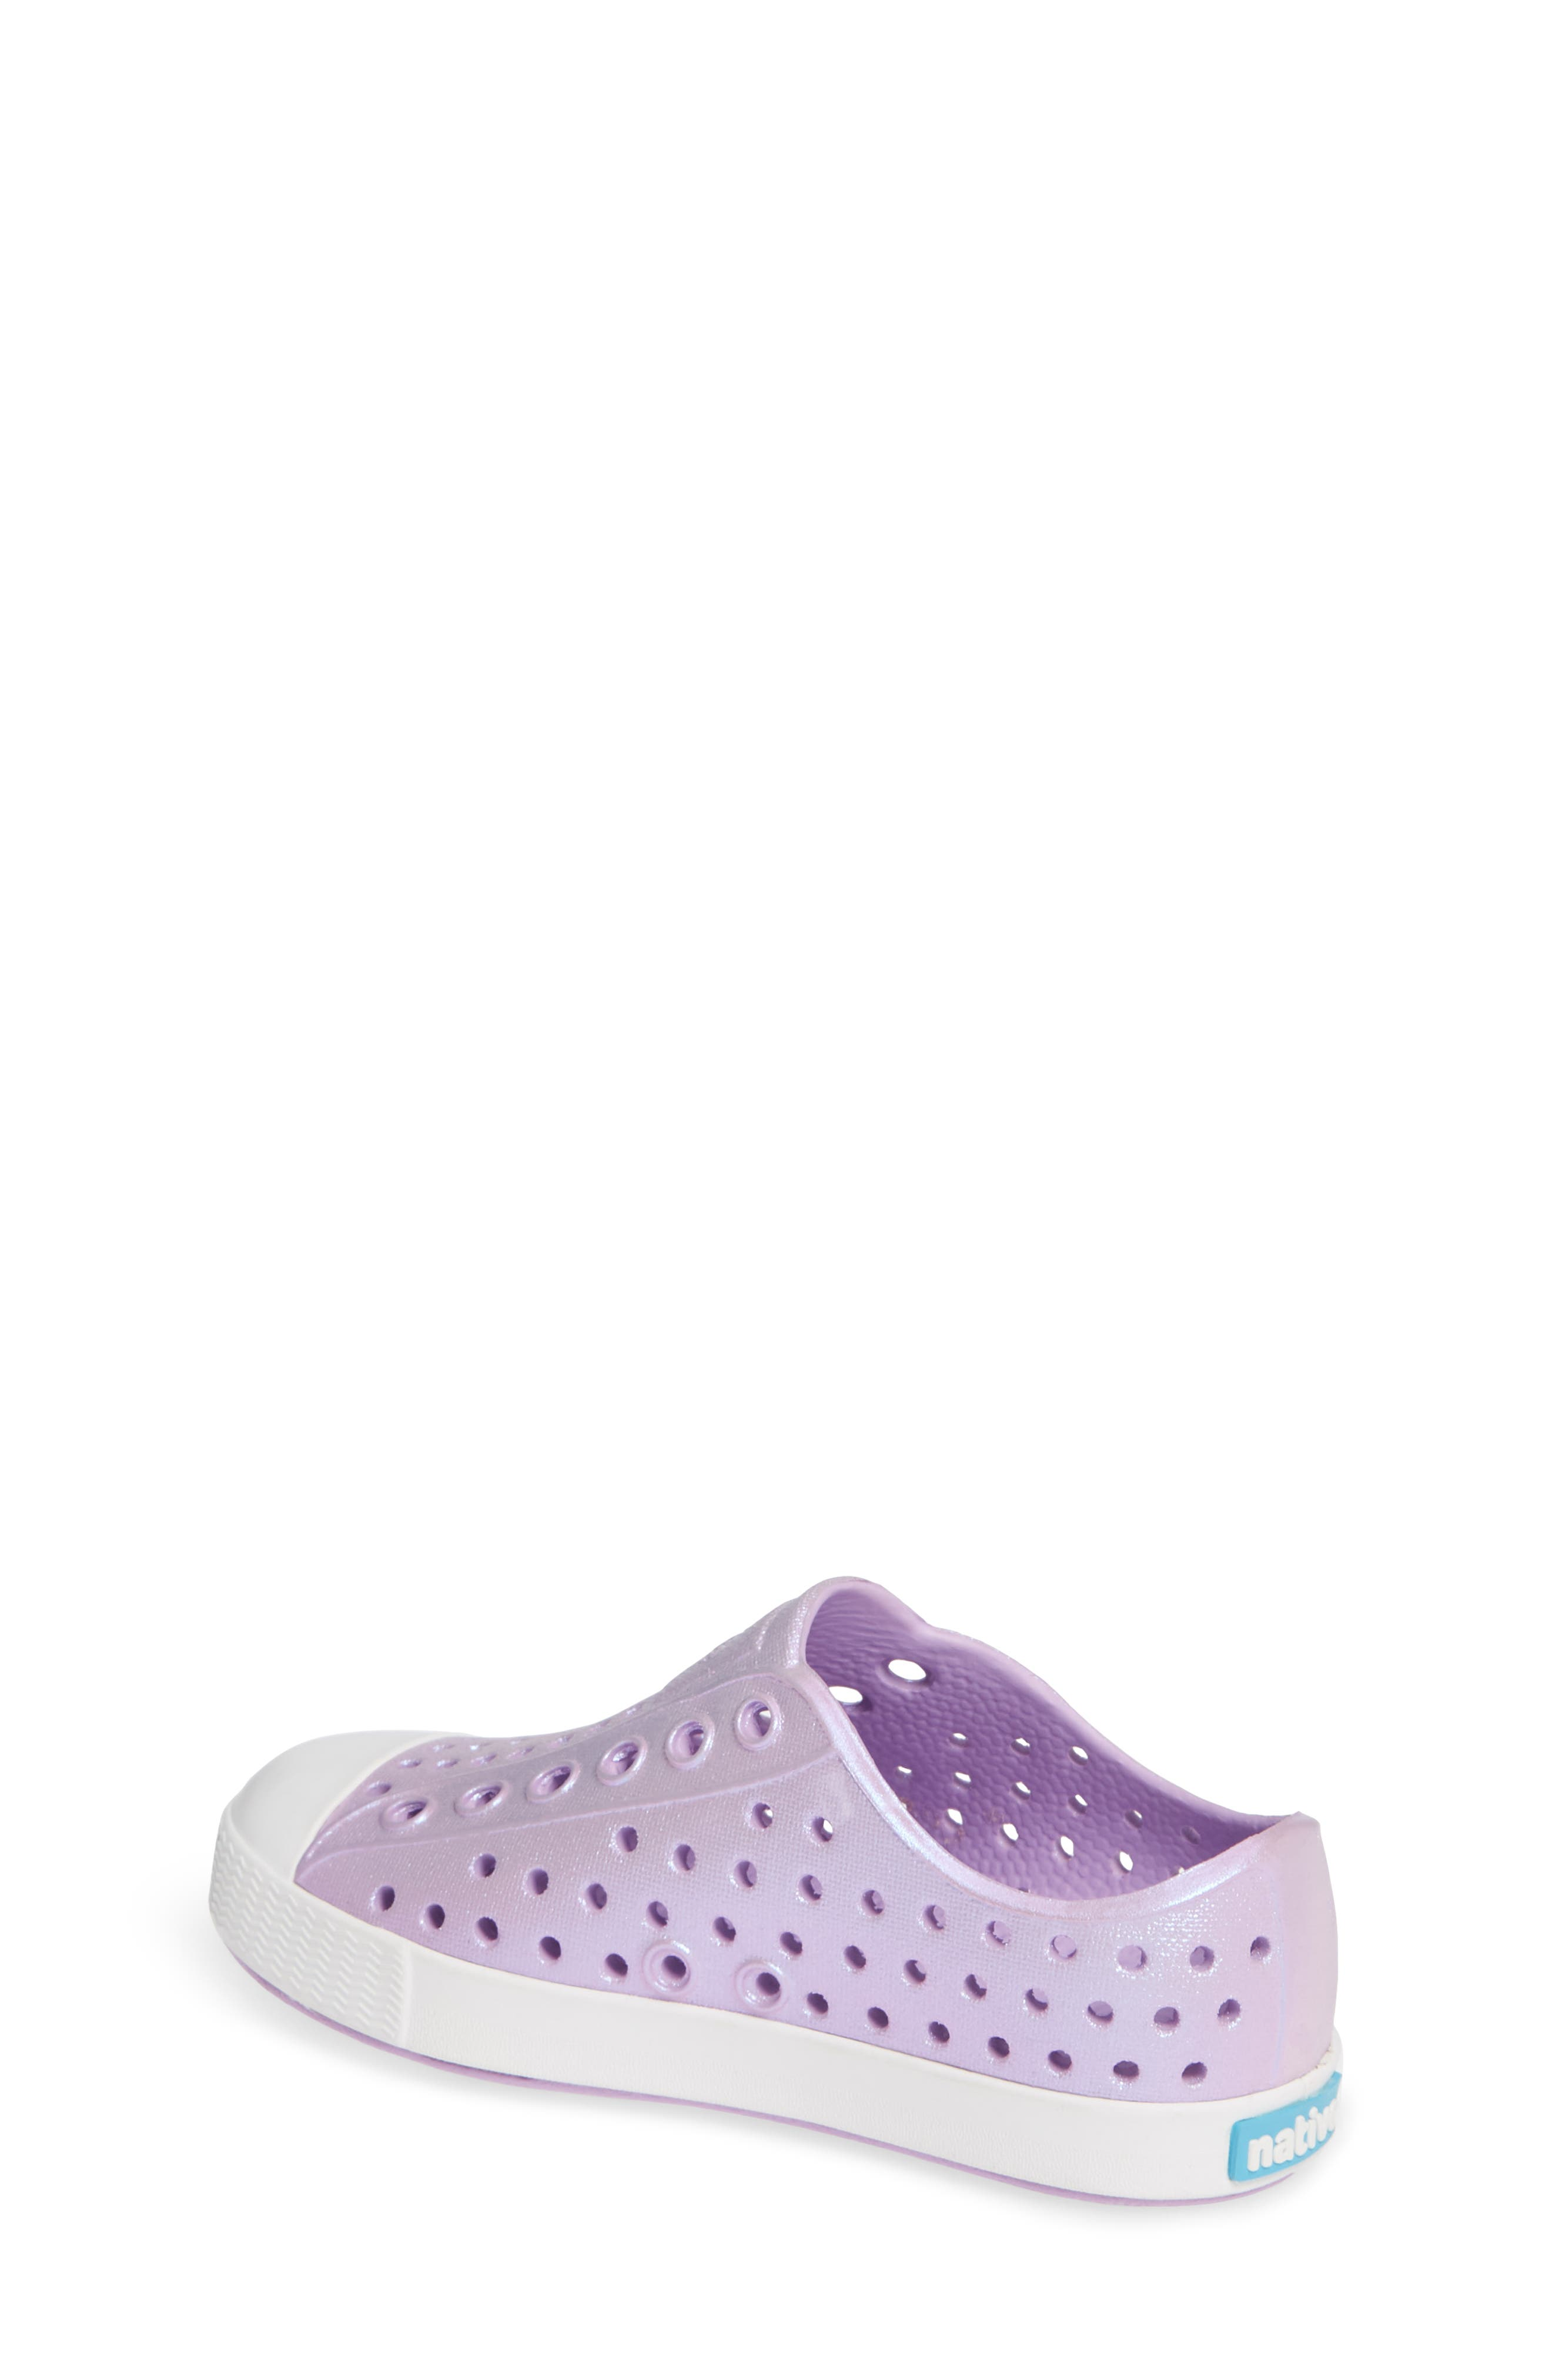 NATIVE SHOES, Jefferson Iridescent Slip-On Vegan Sneaker, Alternate thumbnail 2, color, LAVENDER/ SHELL WHITE/ GALAXY